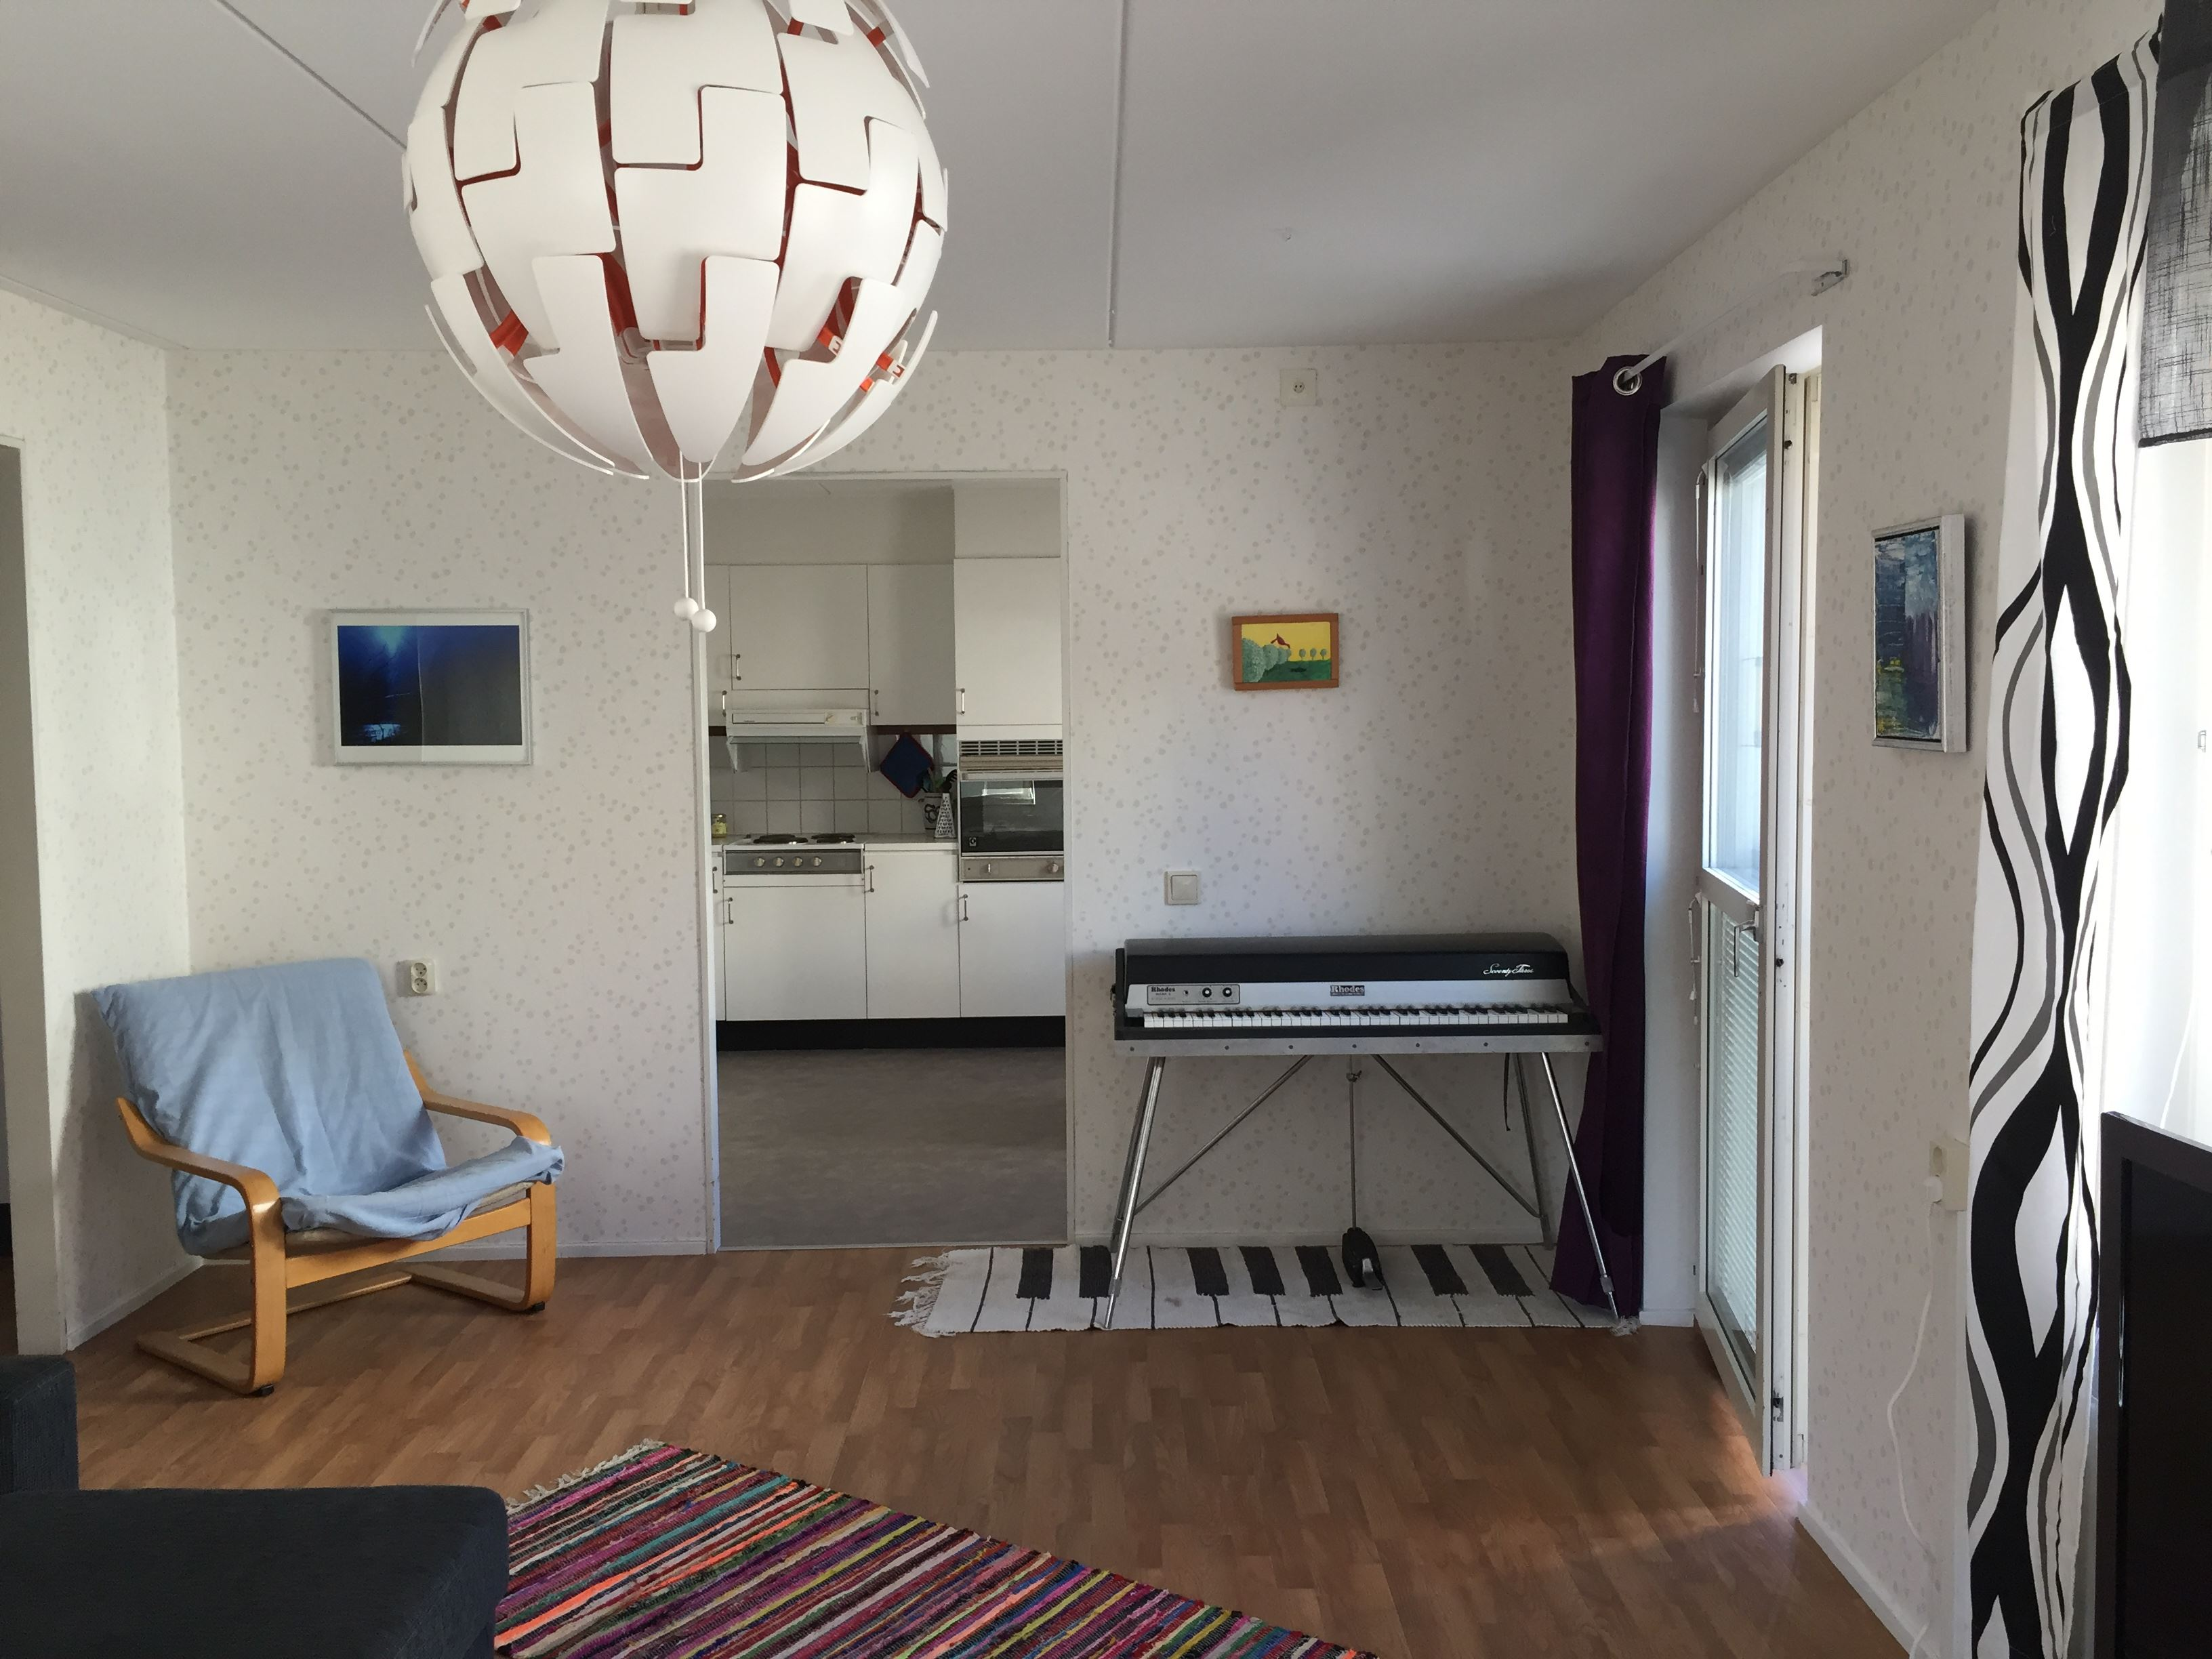 Apartment - Proviantgatan